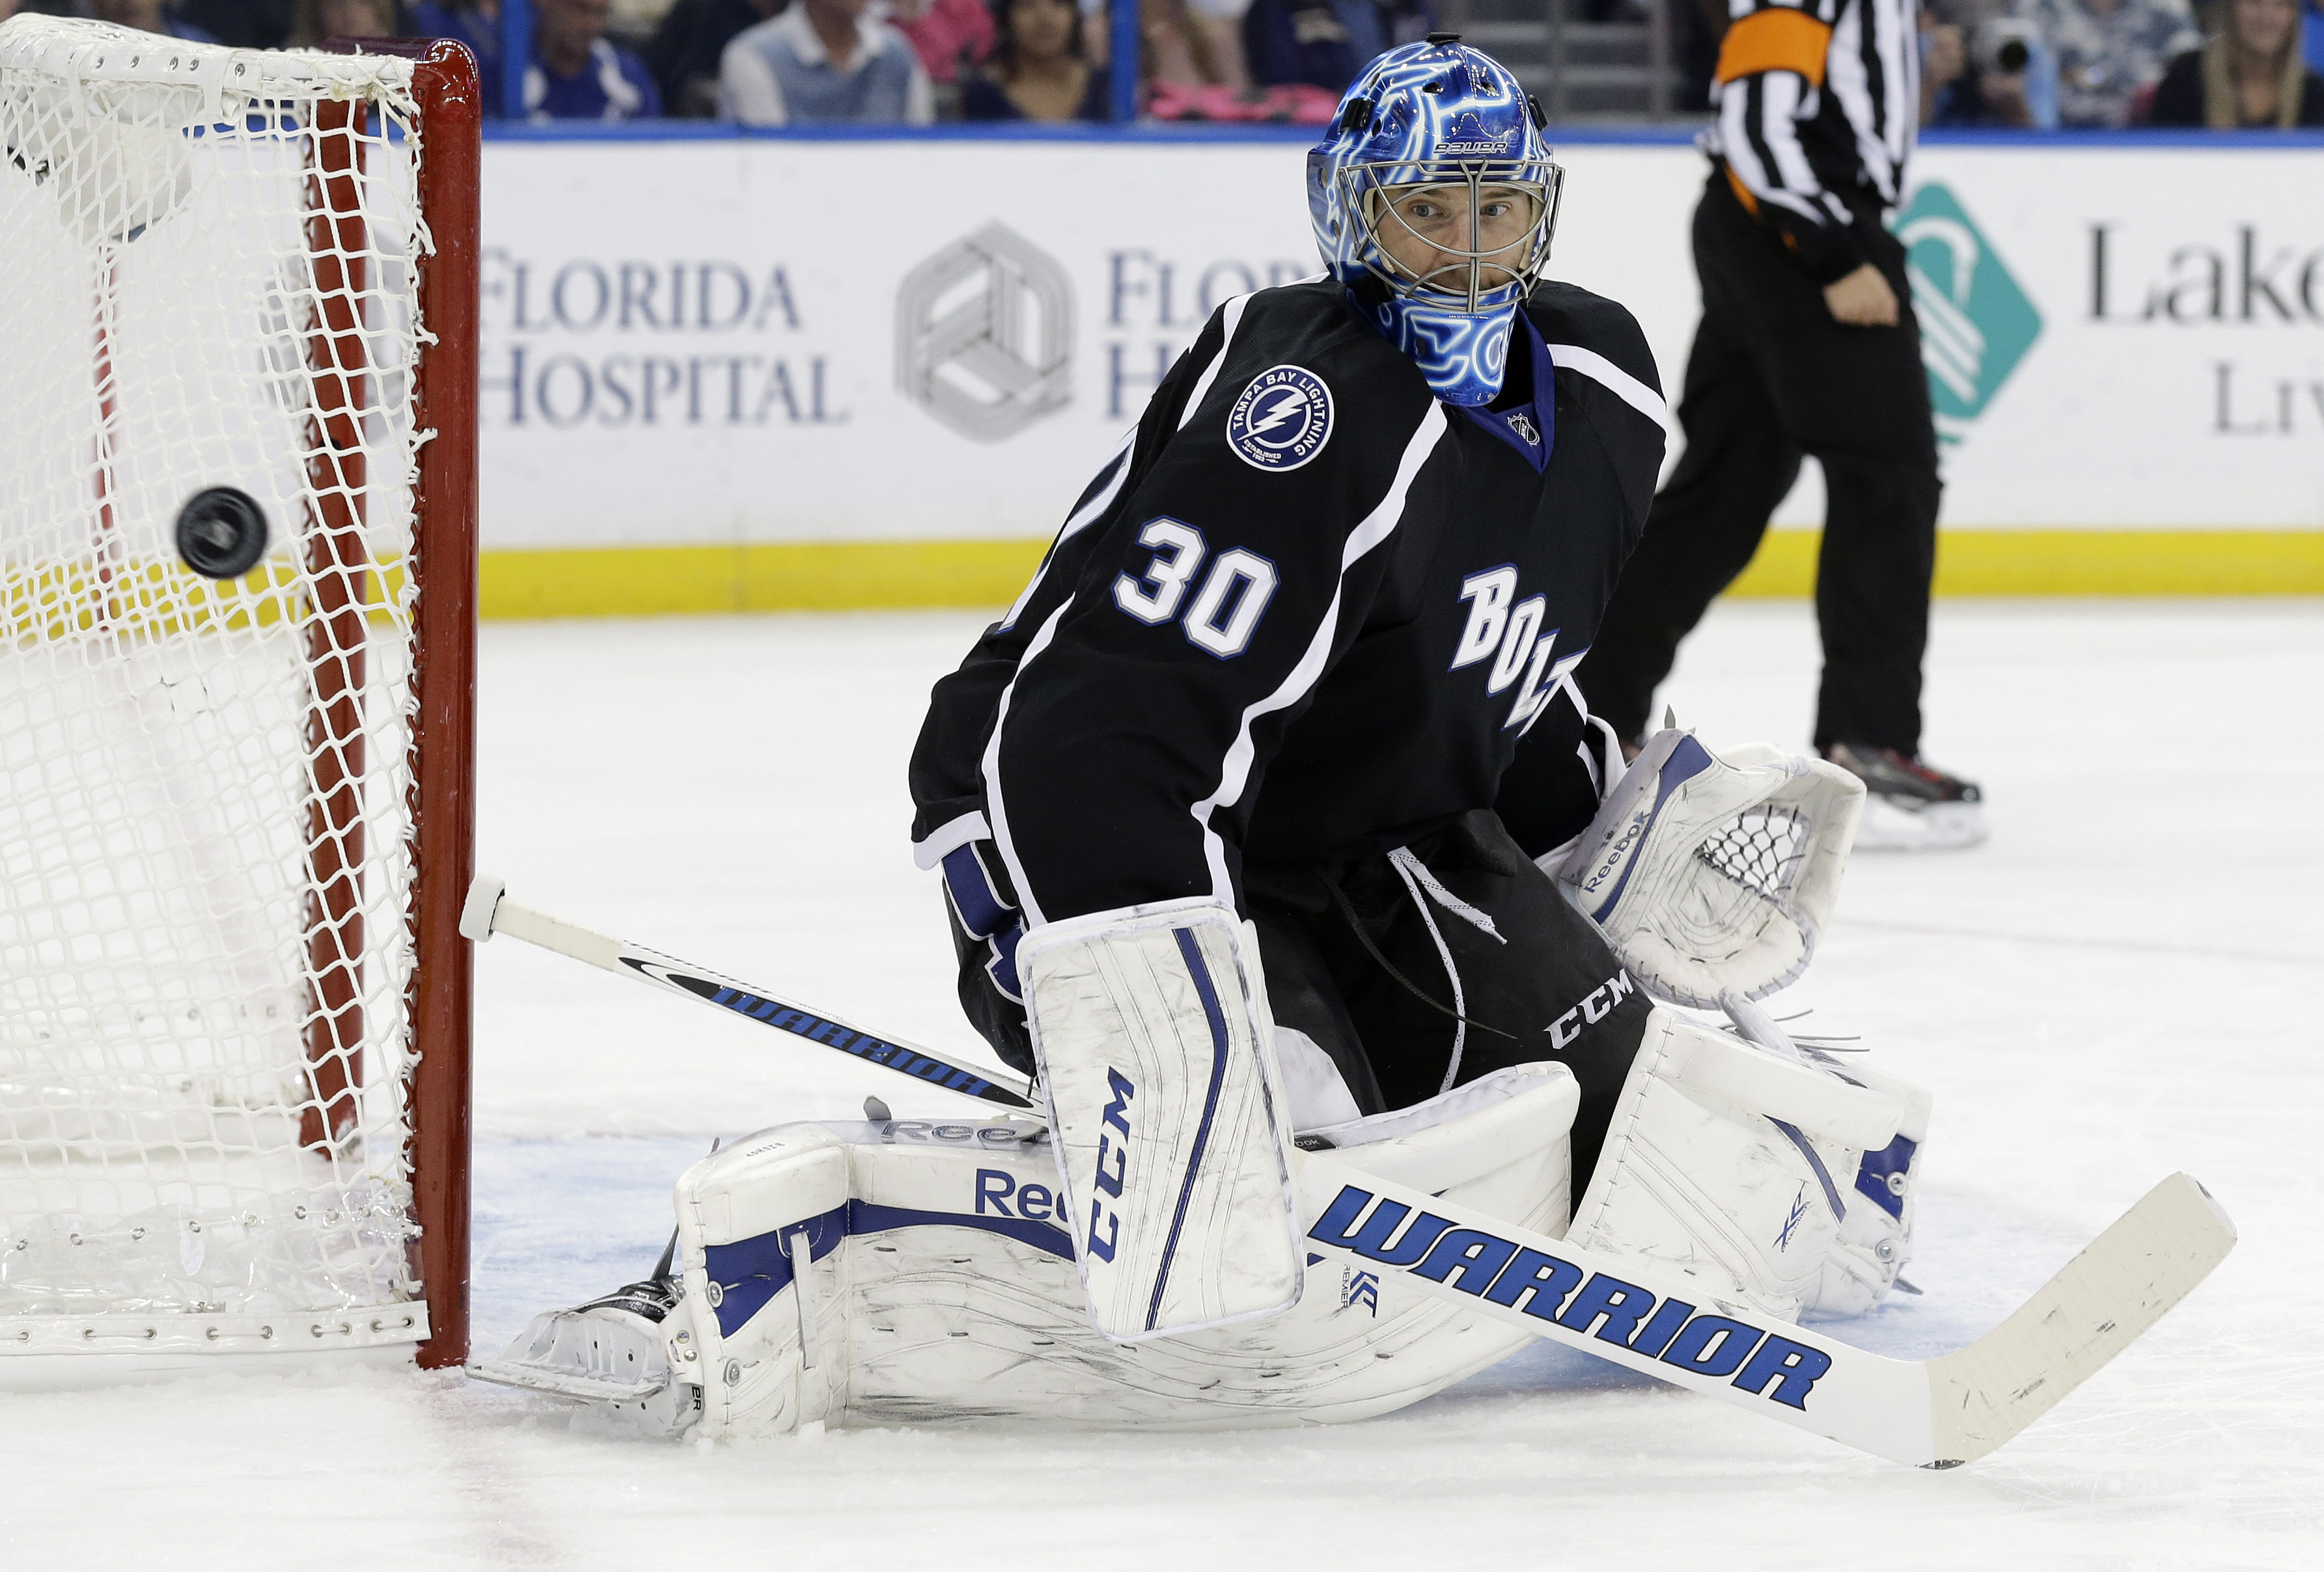 Tampa Bay Lightning goalie Ben Bishop (30) makes a save on a shot by the Buffalo Sabres during the first period of an NHL hockey game Saturday, Oct. 17, 2015, in Tampa, Fla. (AP Photo/Chris O'Meara)